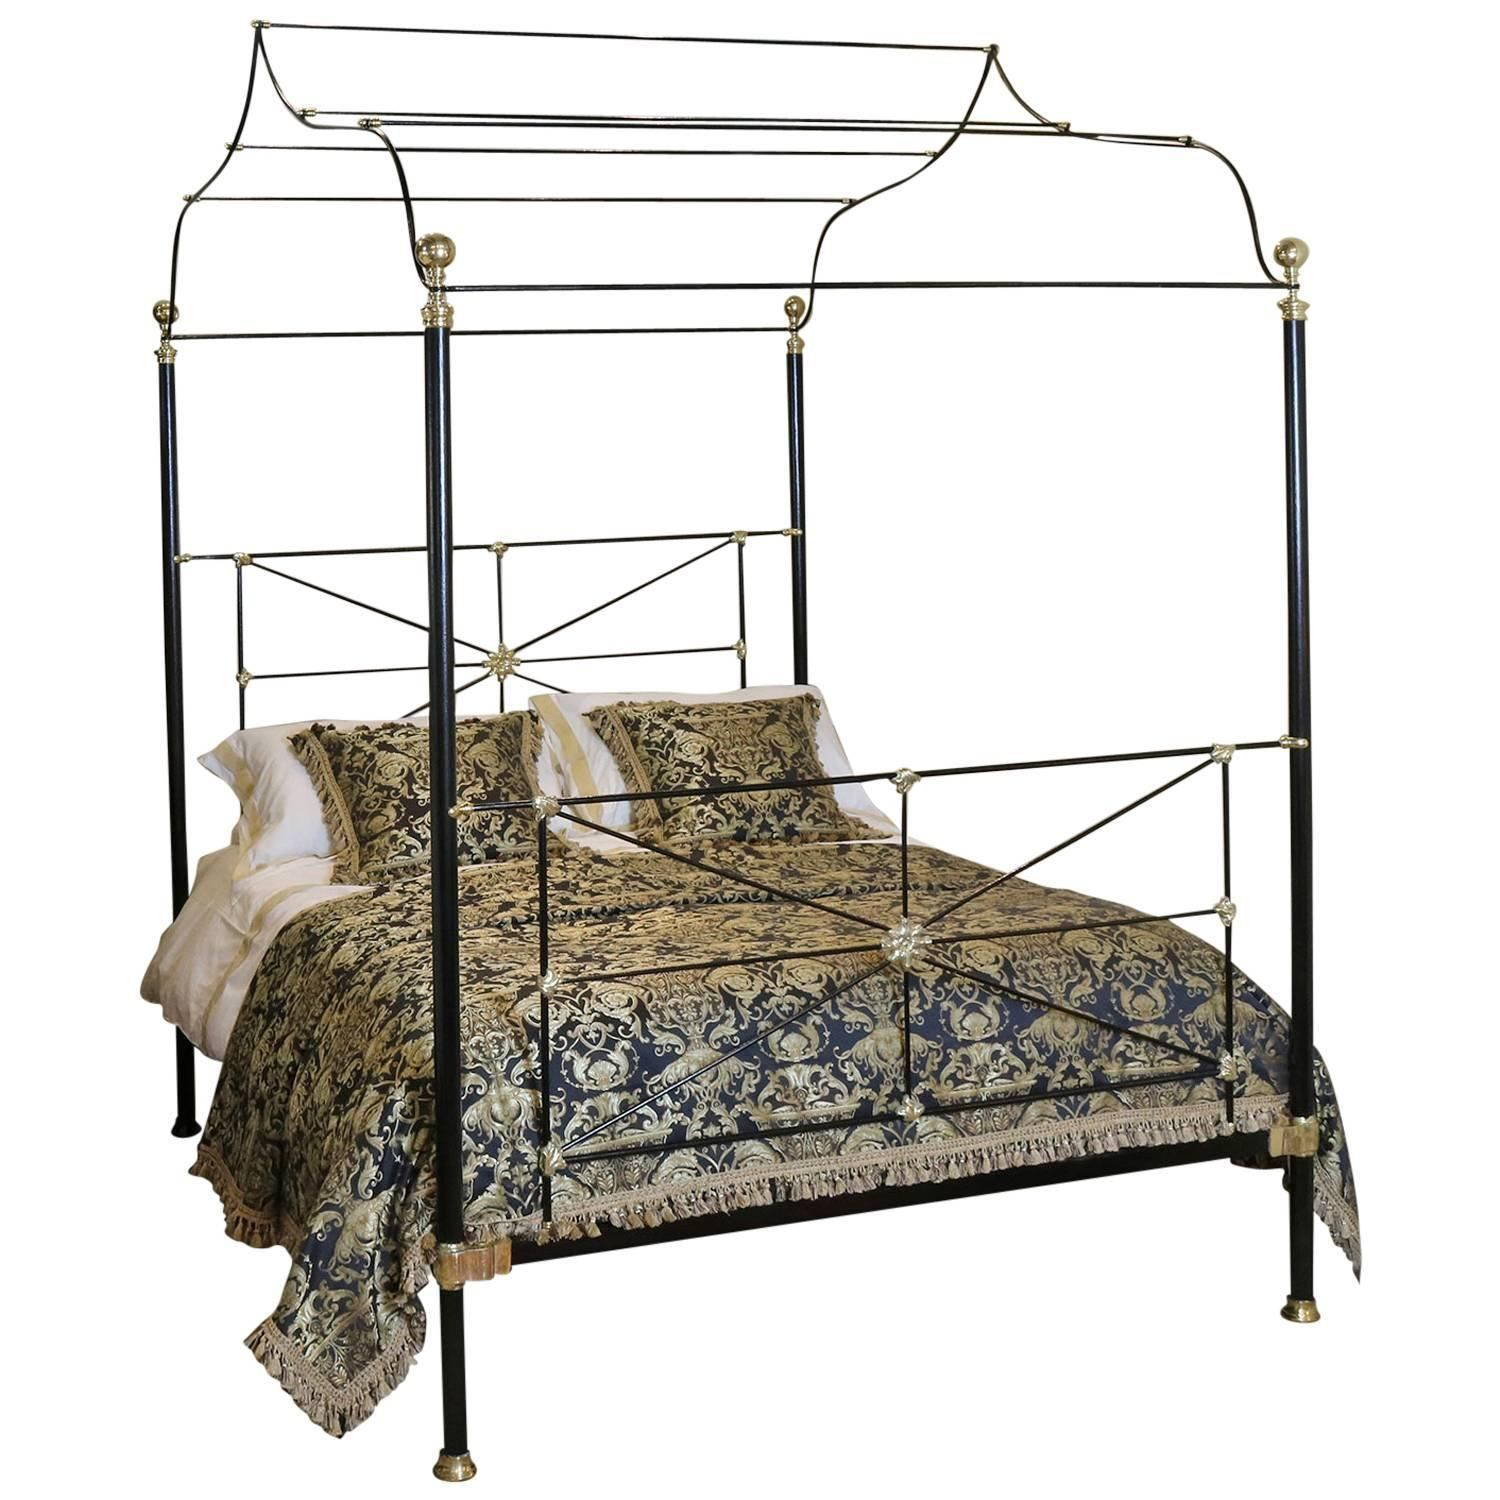 Campaign four poster bed modern bedroom furniture light fittings